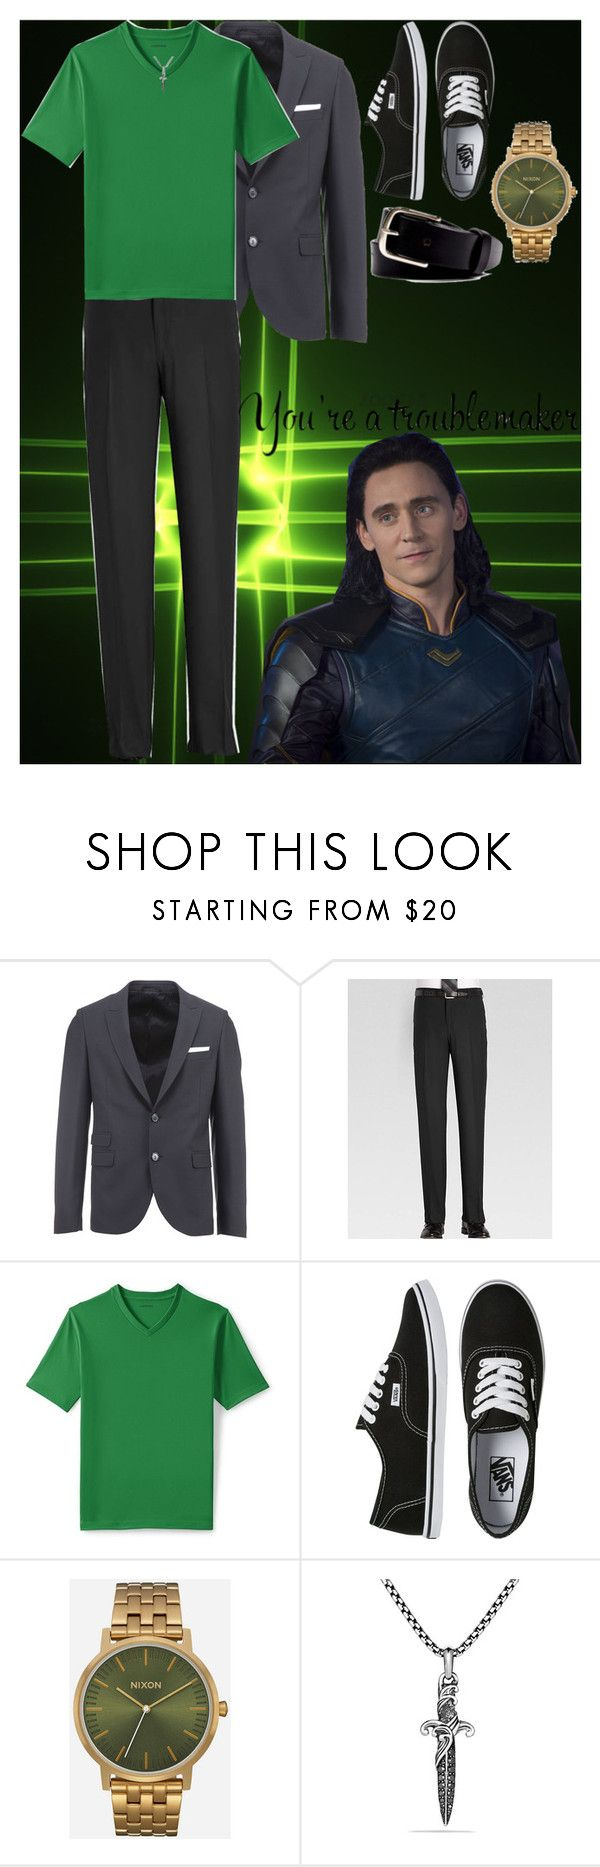 """Dude Looks like a Lady Loki"" by xx-black-blade-xx ❤ liked on Polyvore featuring Neil Barrett, Feiss, Lands' End, Vans, Nixon, David Yurman, APOLIS, men's fashion and menswear"